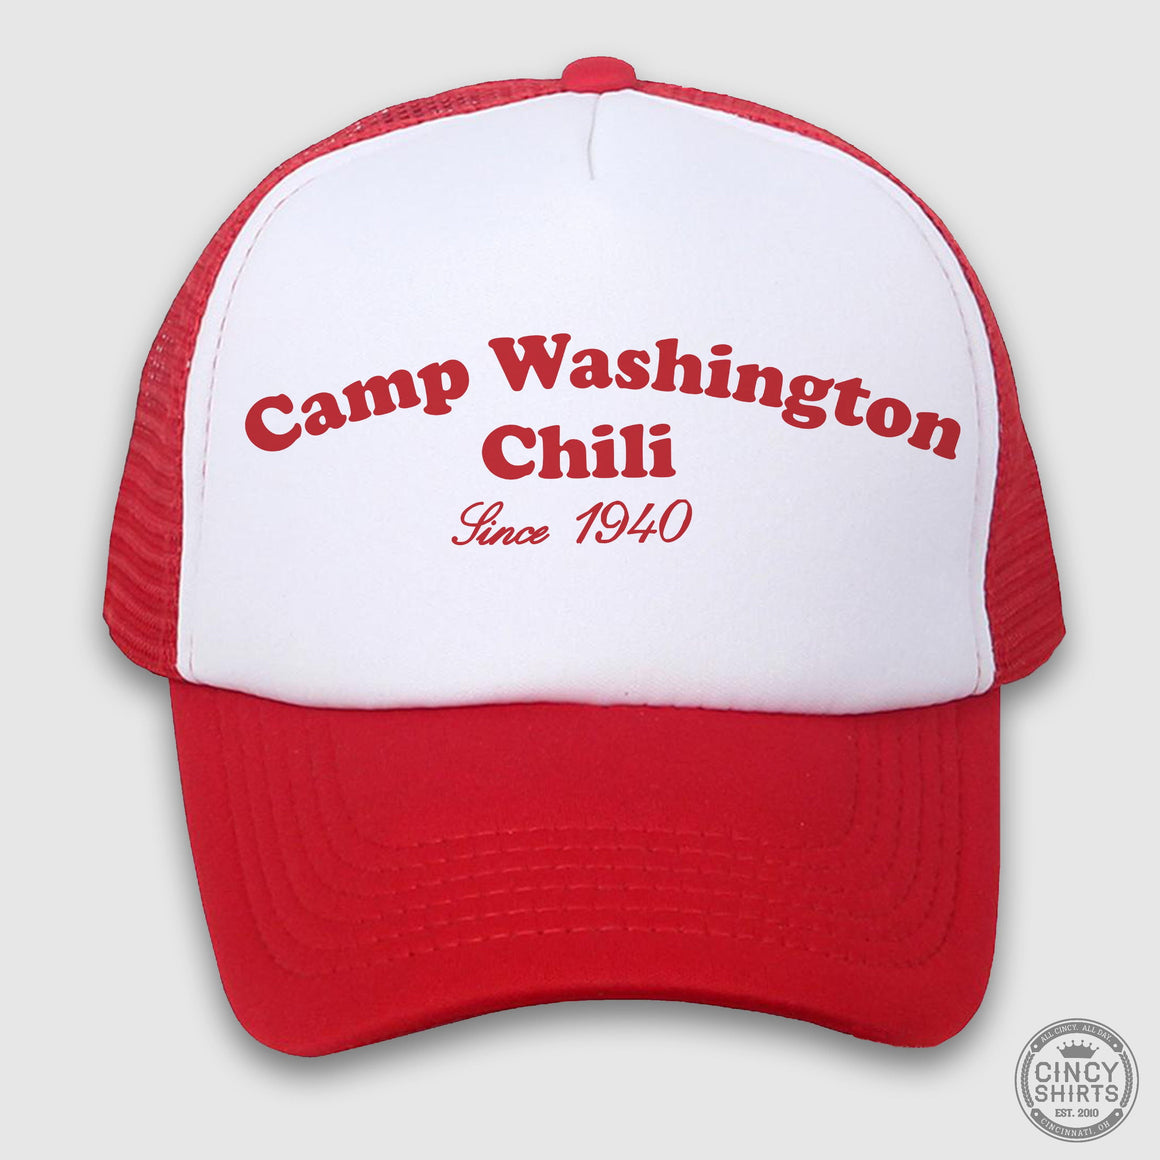 Camp Washington Chili Trucker Hat